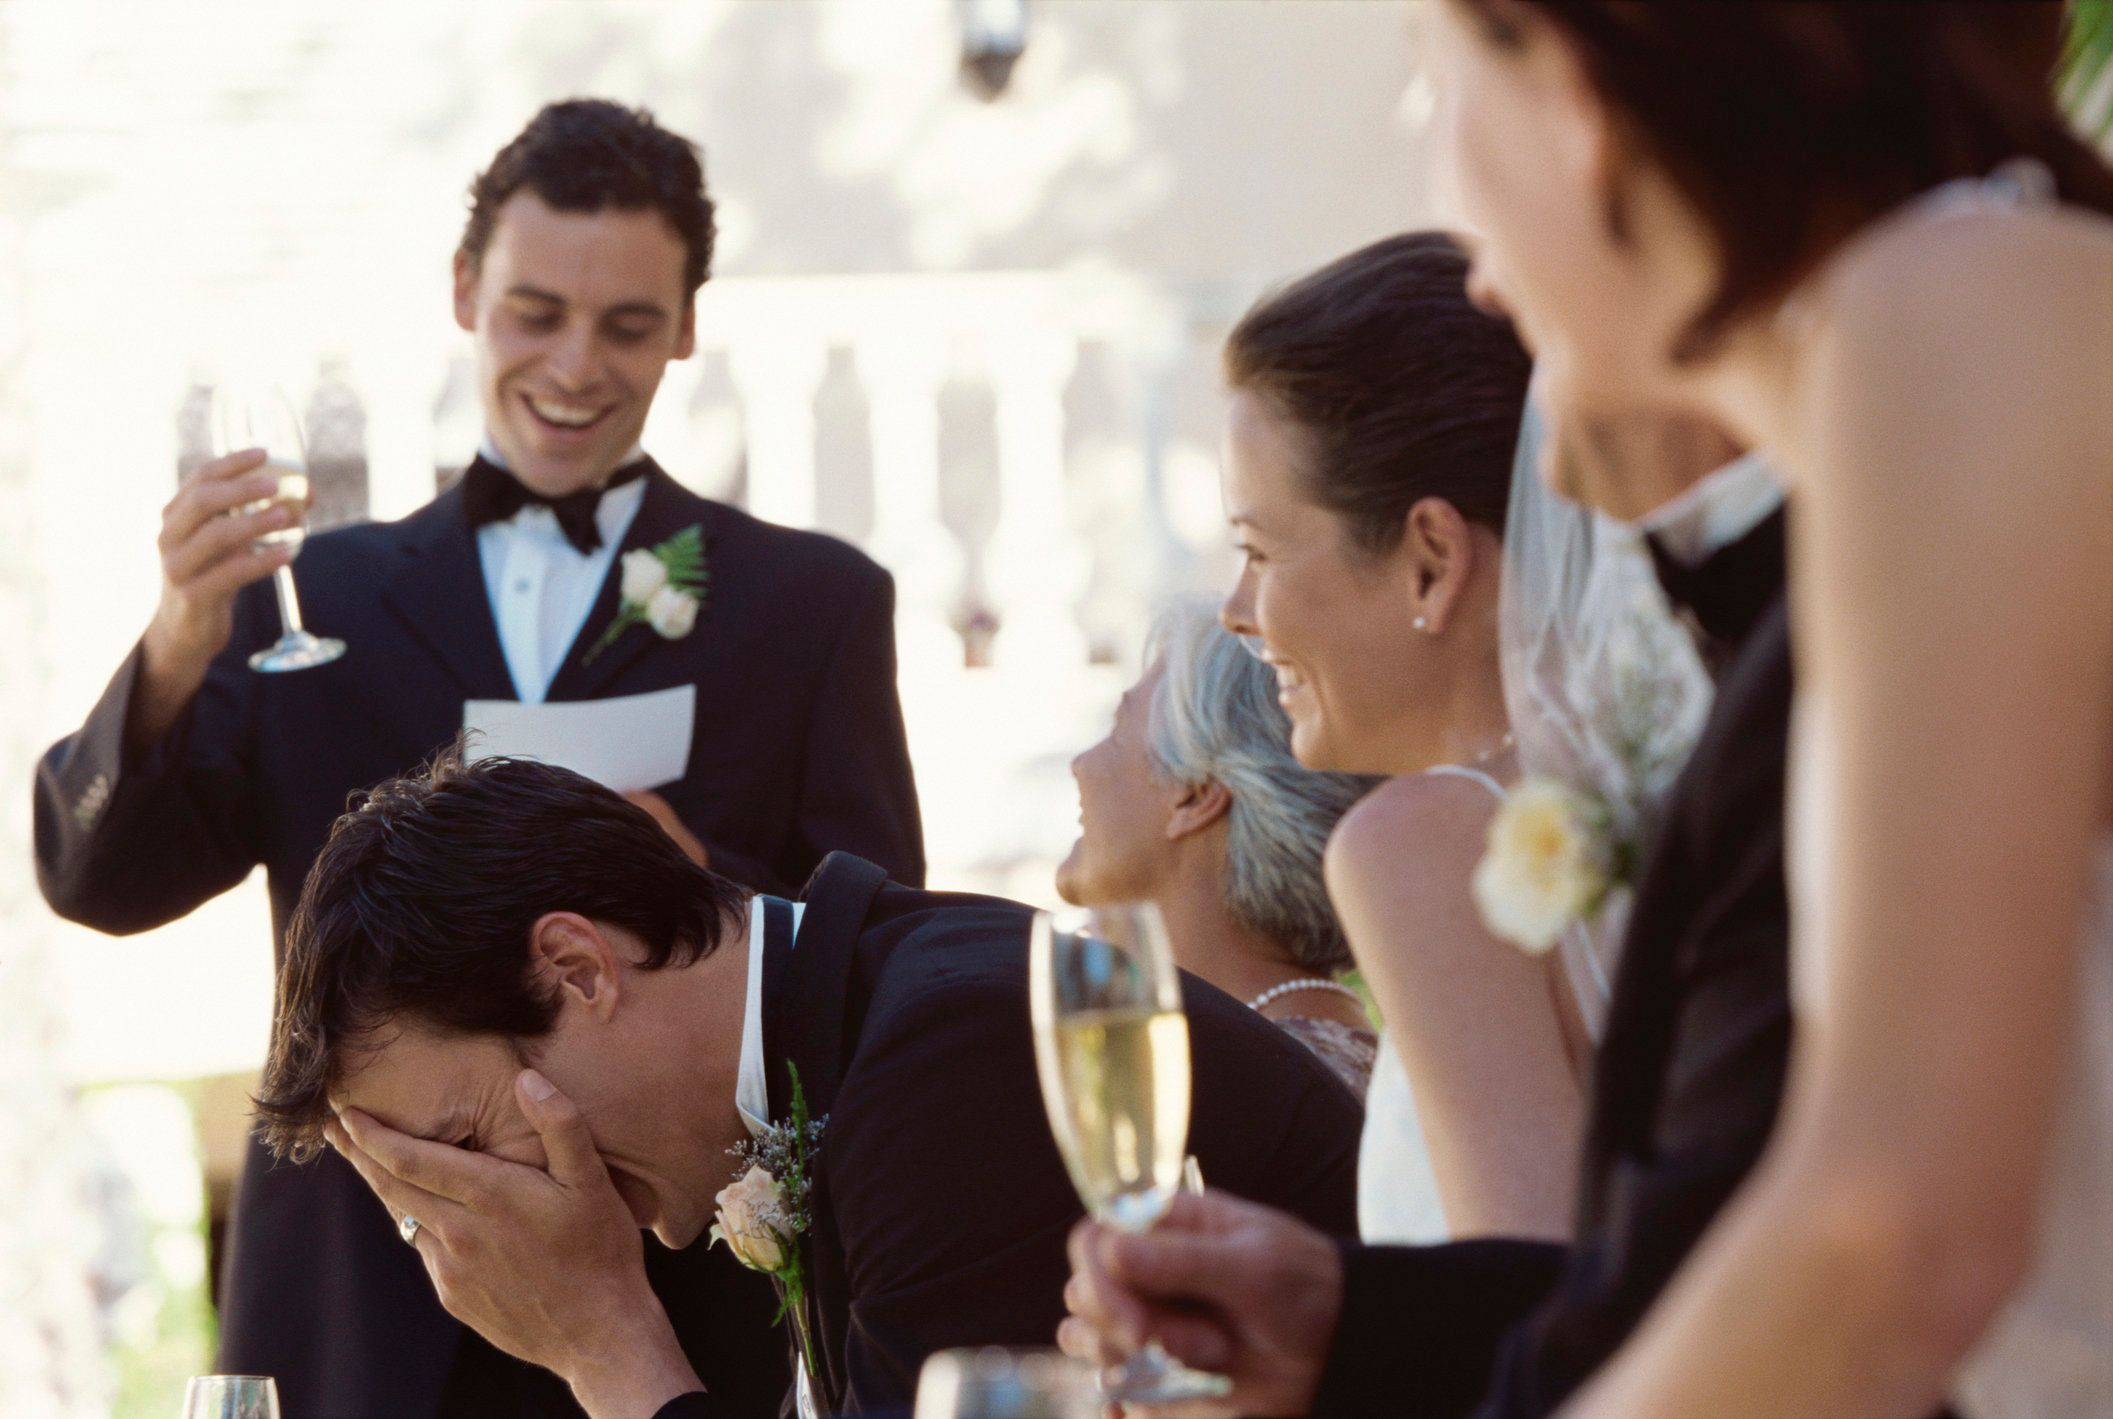 """<a href=""""https://www.huffingtonpost.com/entry/little-girl-gives-wedding-speech_us_596ccf1be4b03389bb192f49"""">Funny wedding speeches</a> may be the gold standard, but not everyone is a comedian.Below are some tips forthe<a href=""""https://www.huffingtonpost.com/topic/best-man"""">best man</a>or<a href=""""https://www.huffingtonpost.com/topic/maid-of-honor"""">maid of honor</a>to help you compose a toast that's humorous but also meaningful."""